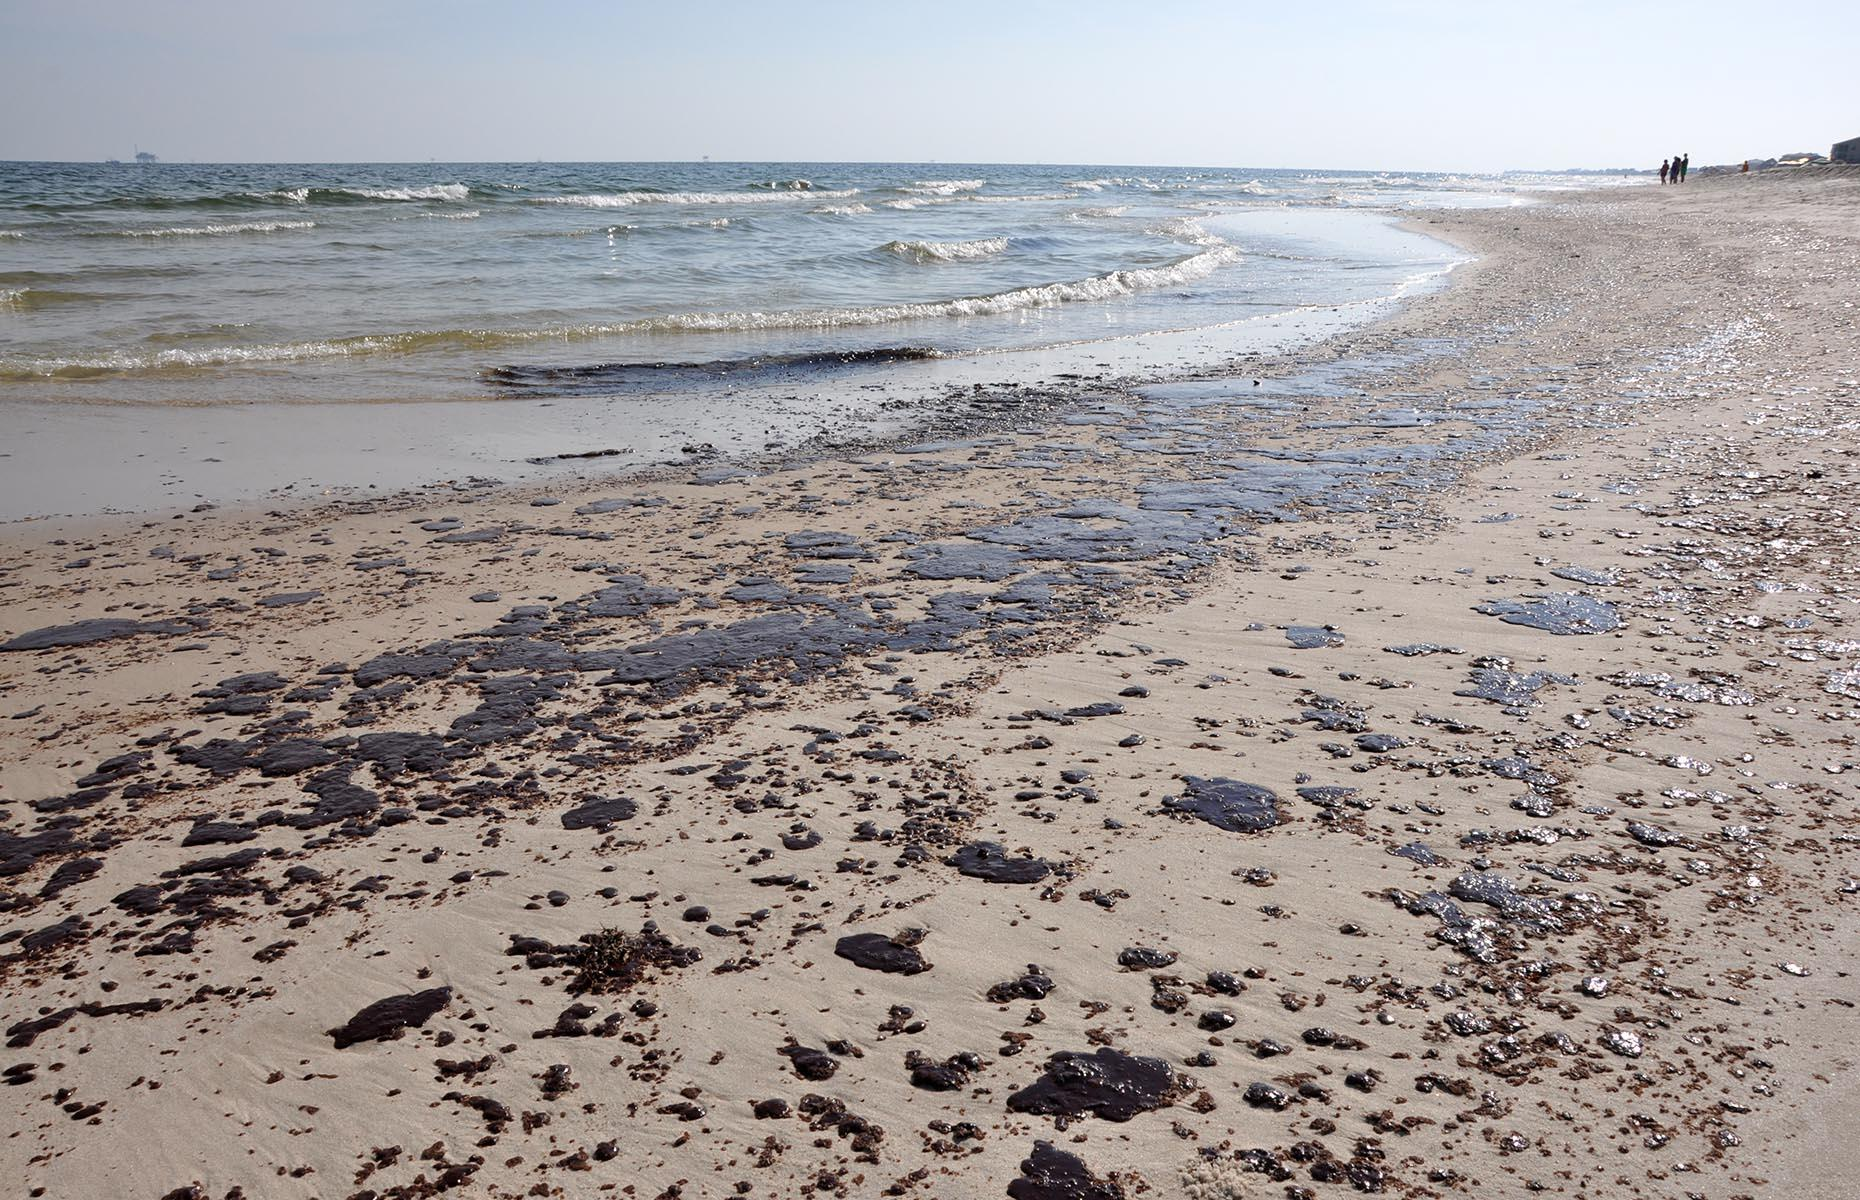 Slide 11 of 33: There's no doubting the damage done by an oil spillage impacts both the environment and communities for many years after the event. Pictured here are tar balls – clumps of sticky oil, sand and shells – at Gulf Shores, Alabama in 2010, shortly after the Deepwater Horizon oil spillage. However, two years later, Hurricane Isaac wreaked havoc in the southern states and the tar balls returned along Alabama and Louisiana's coastline, including Elmer's Island.